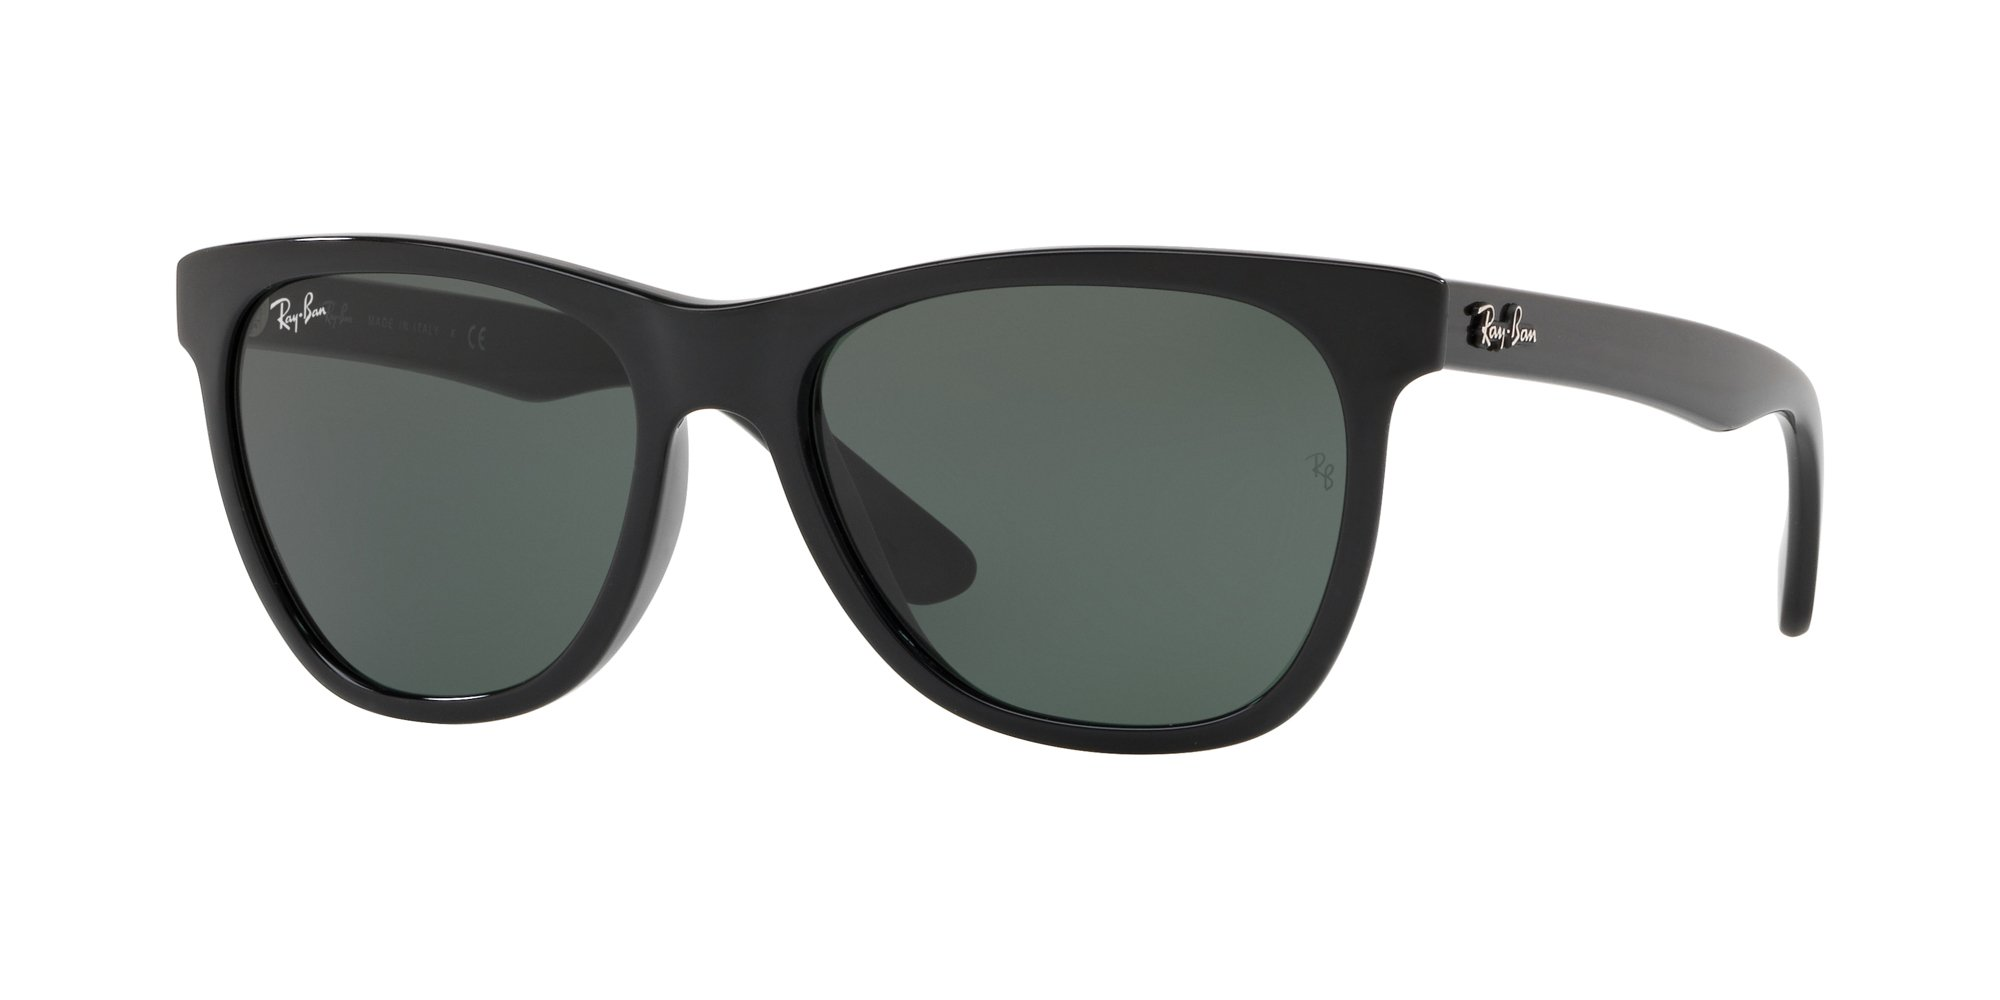 31e739f66d8 Buy RAY-BAN - RAYBAN RB4057 601 61 mm in Cheap Price on Alibaba.com